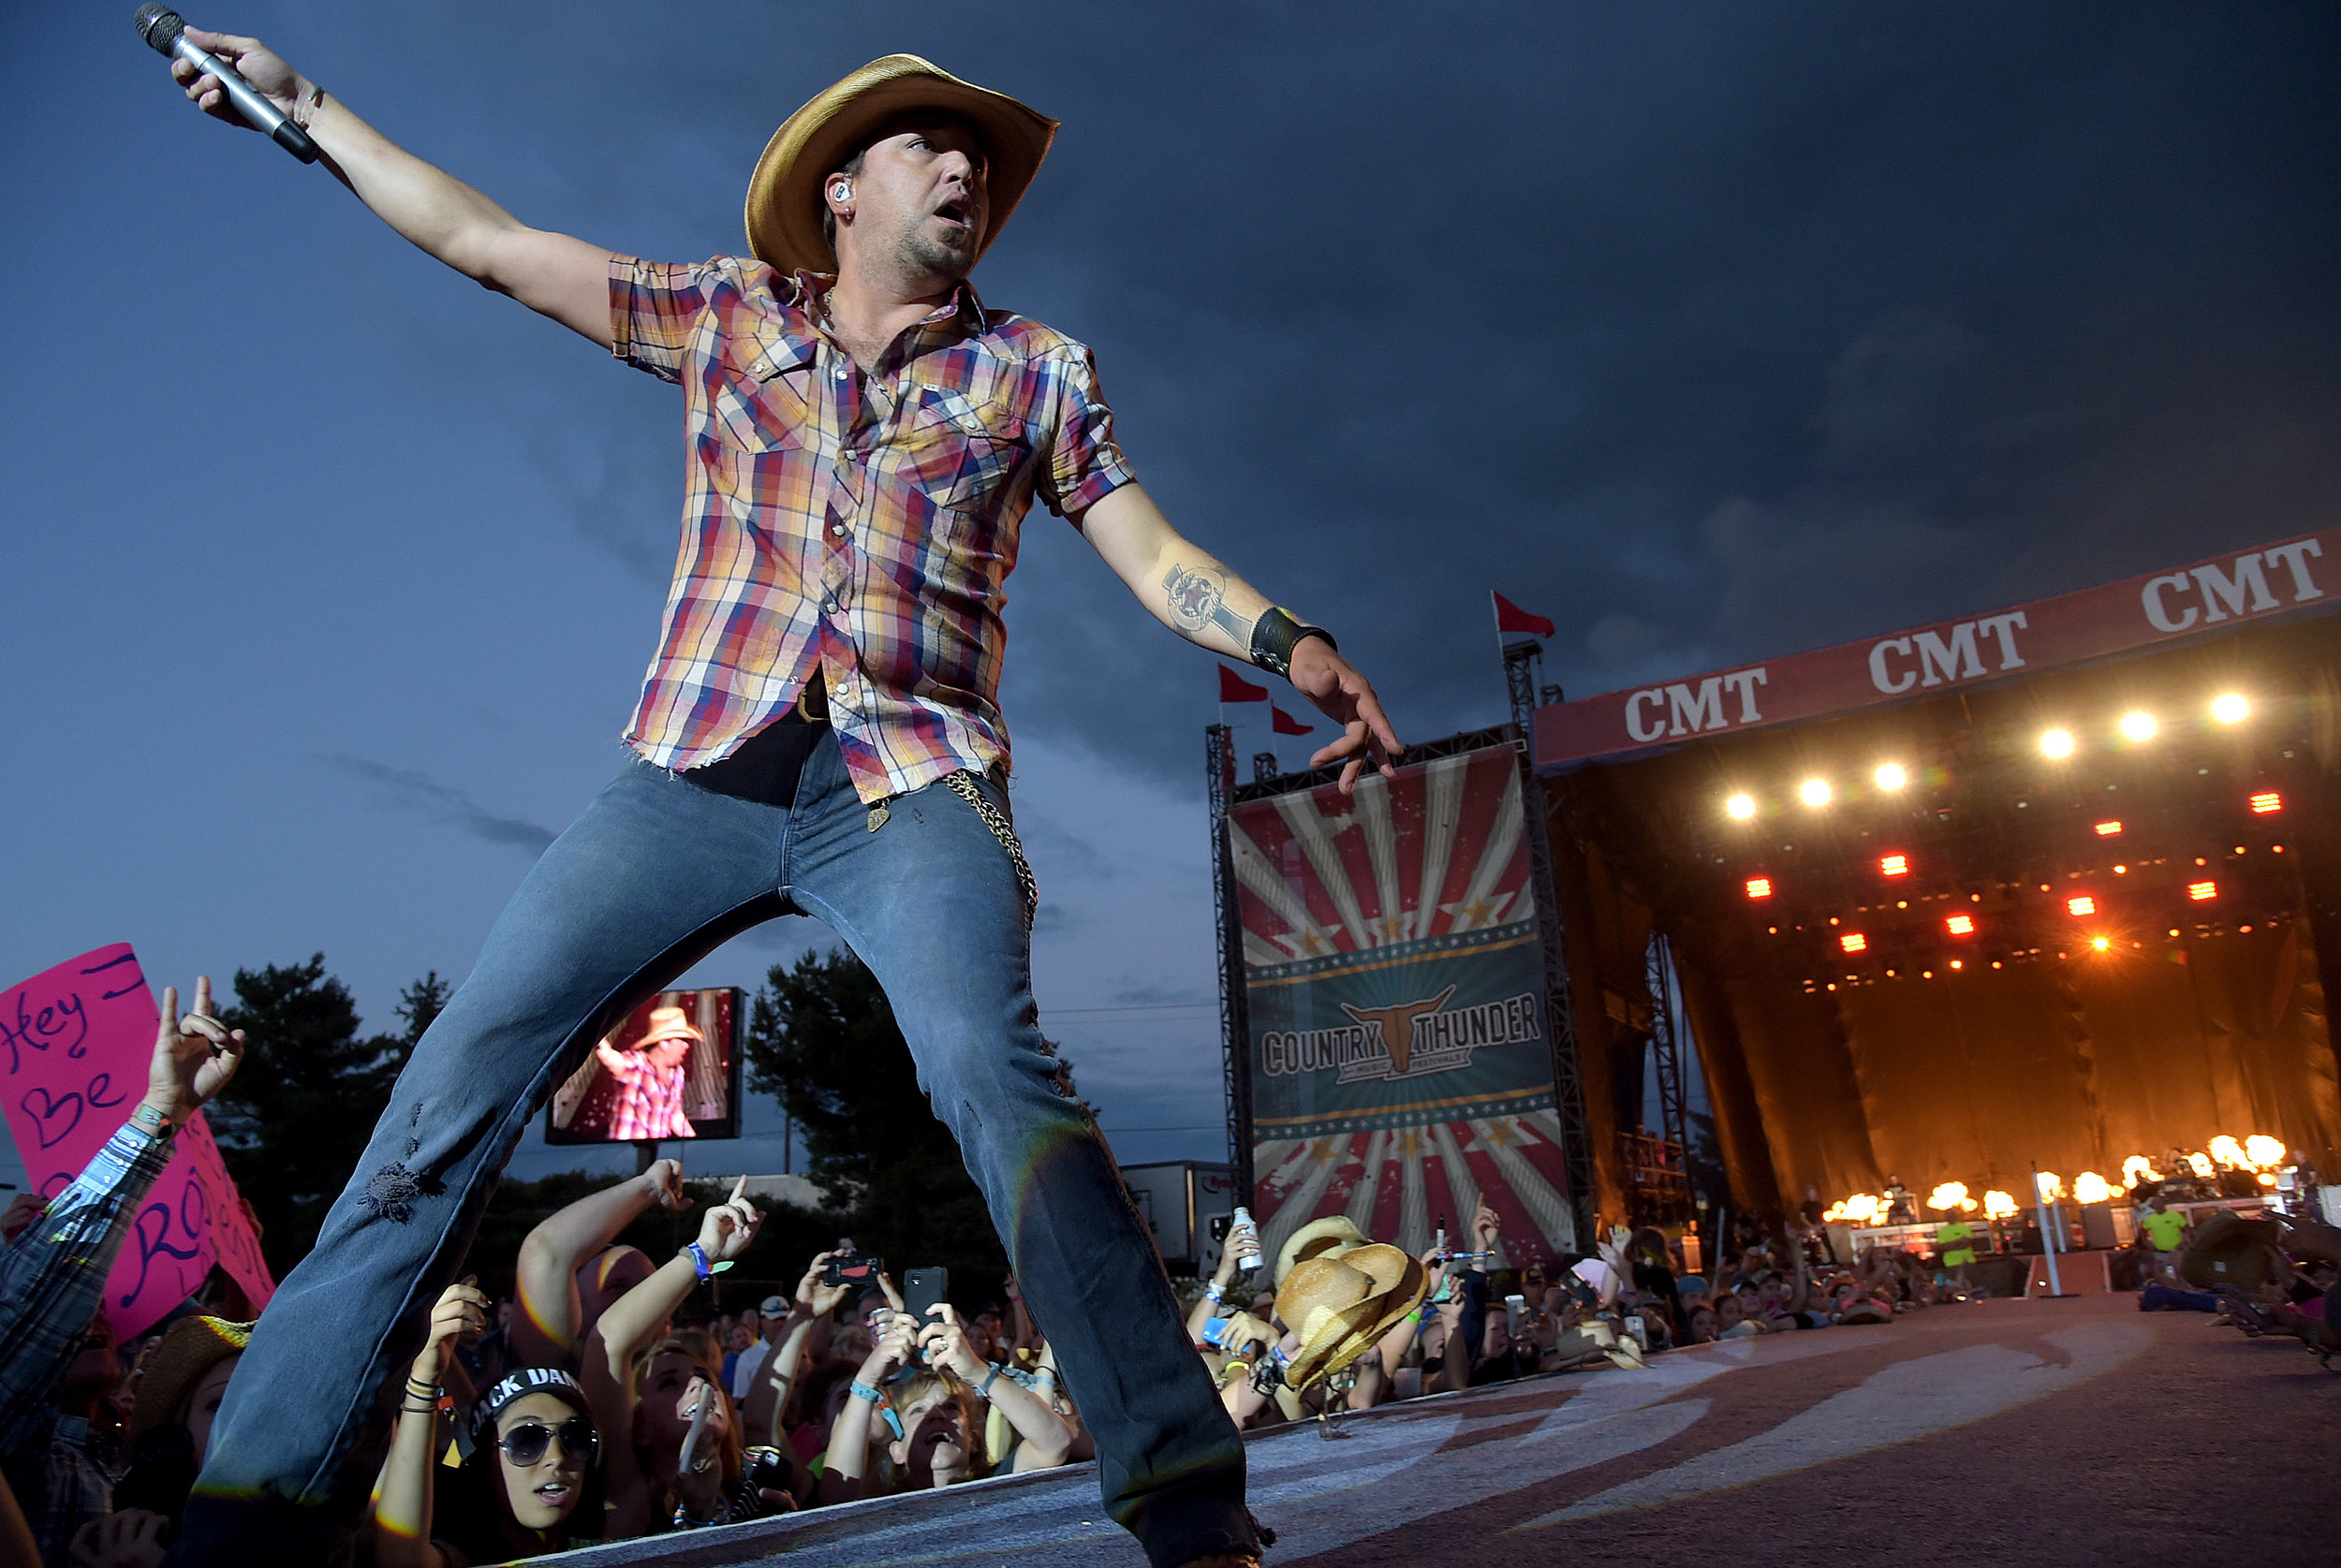 Win Jason Aldean Tickets And Meet And Greet Passes Video